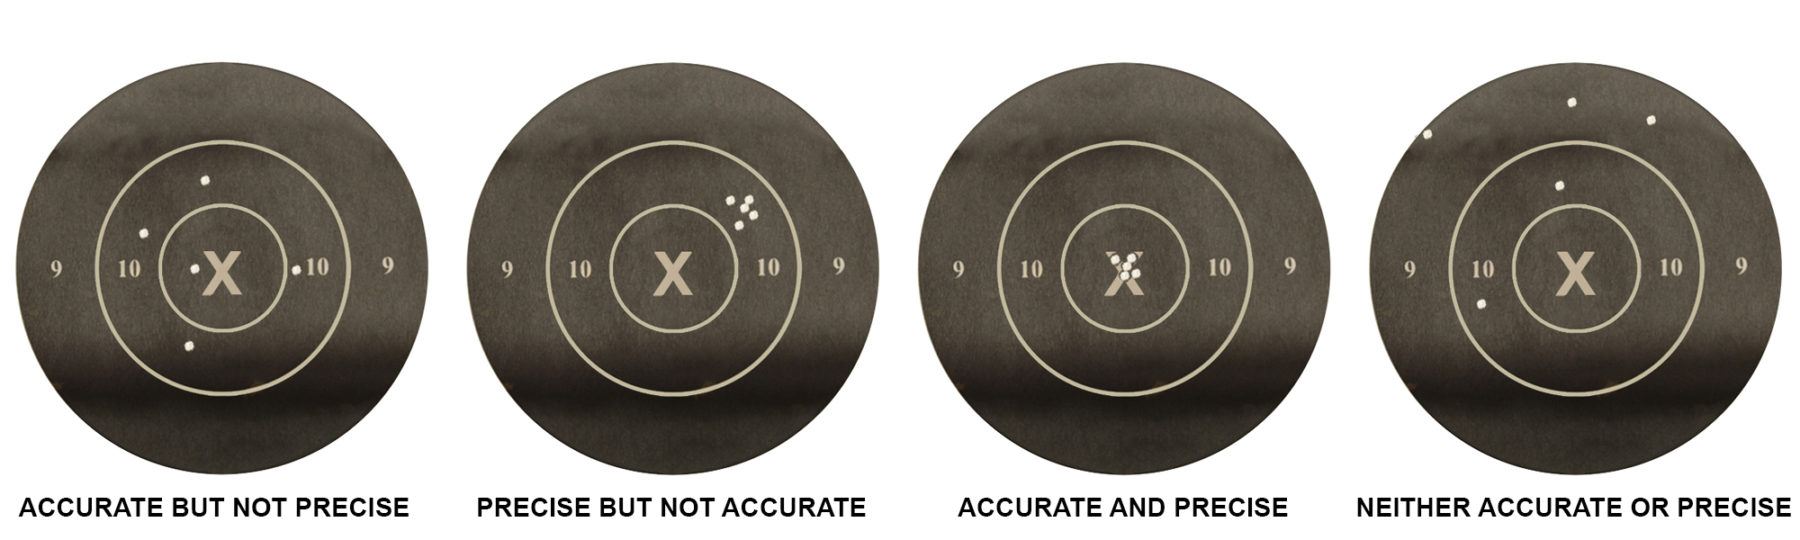 Shoot target examples of accuracy and precision